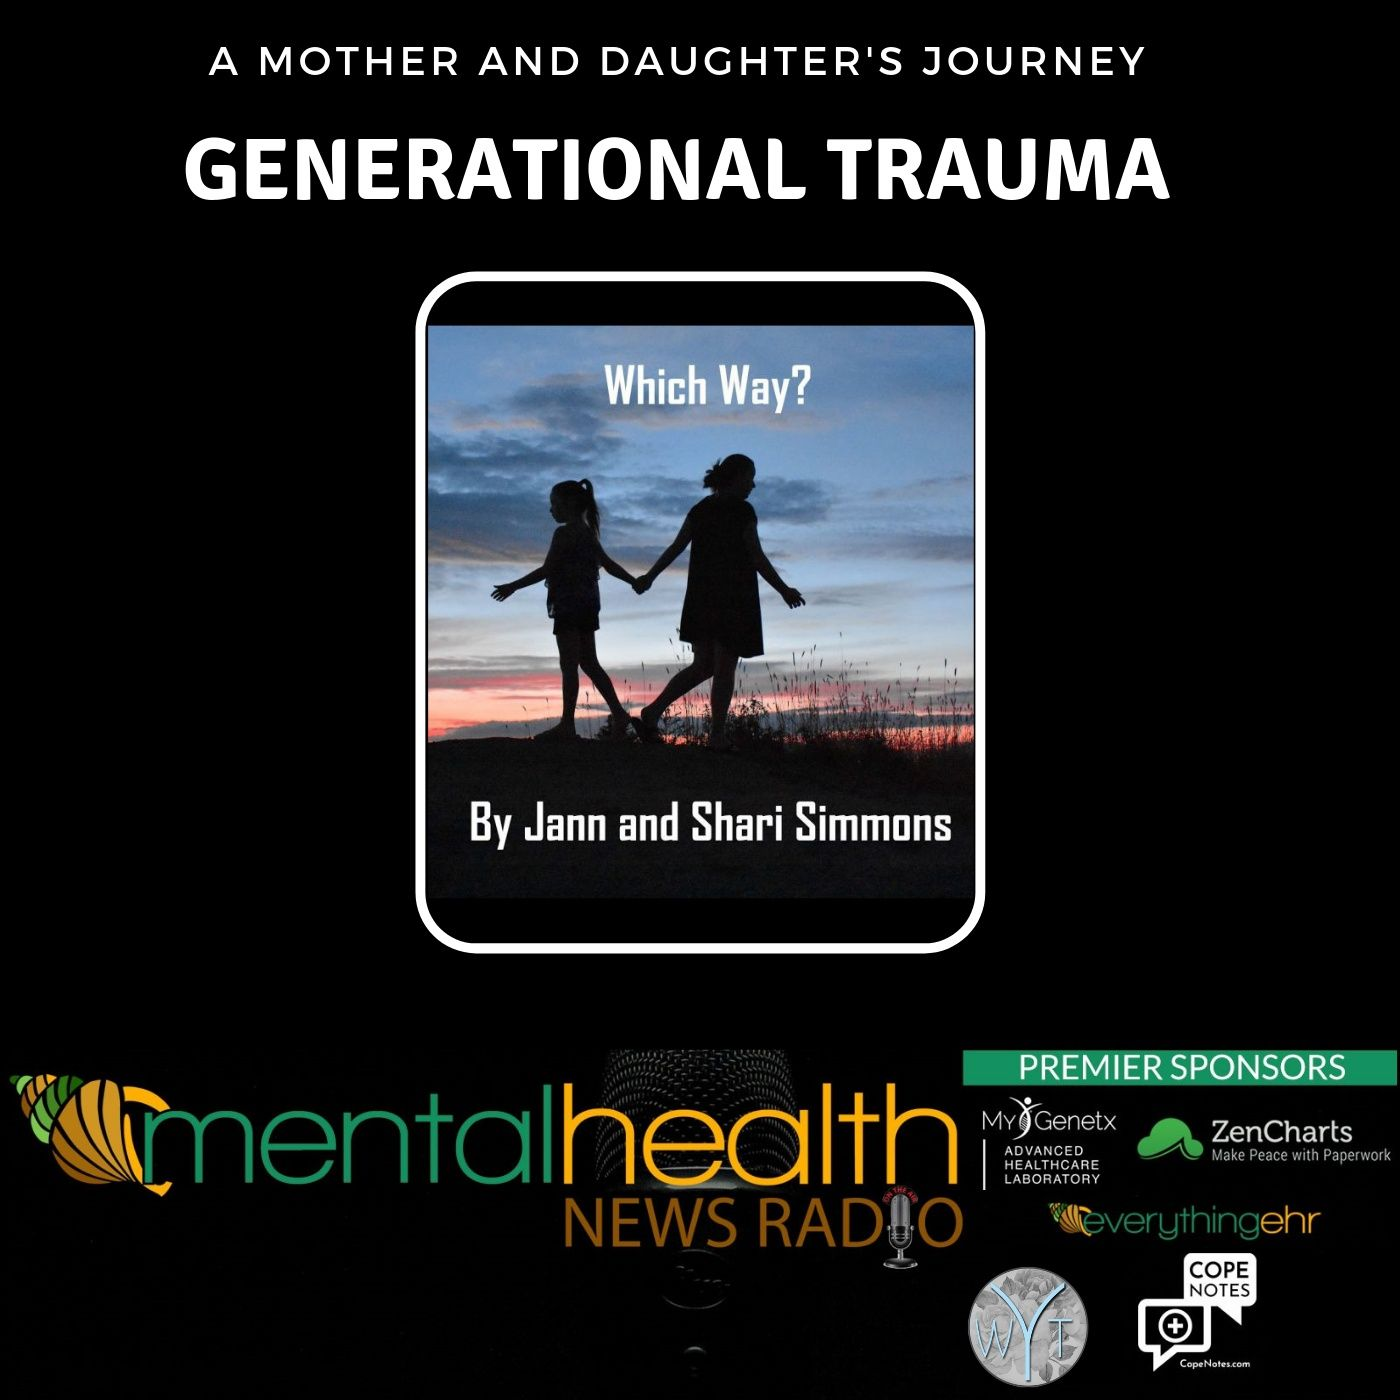 Mental Health News Radio - Which Way? A Mother and Daughter's Journey on Generational Trauma